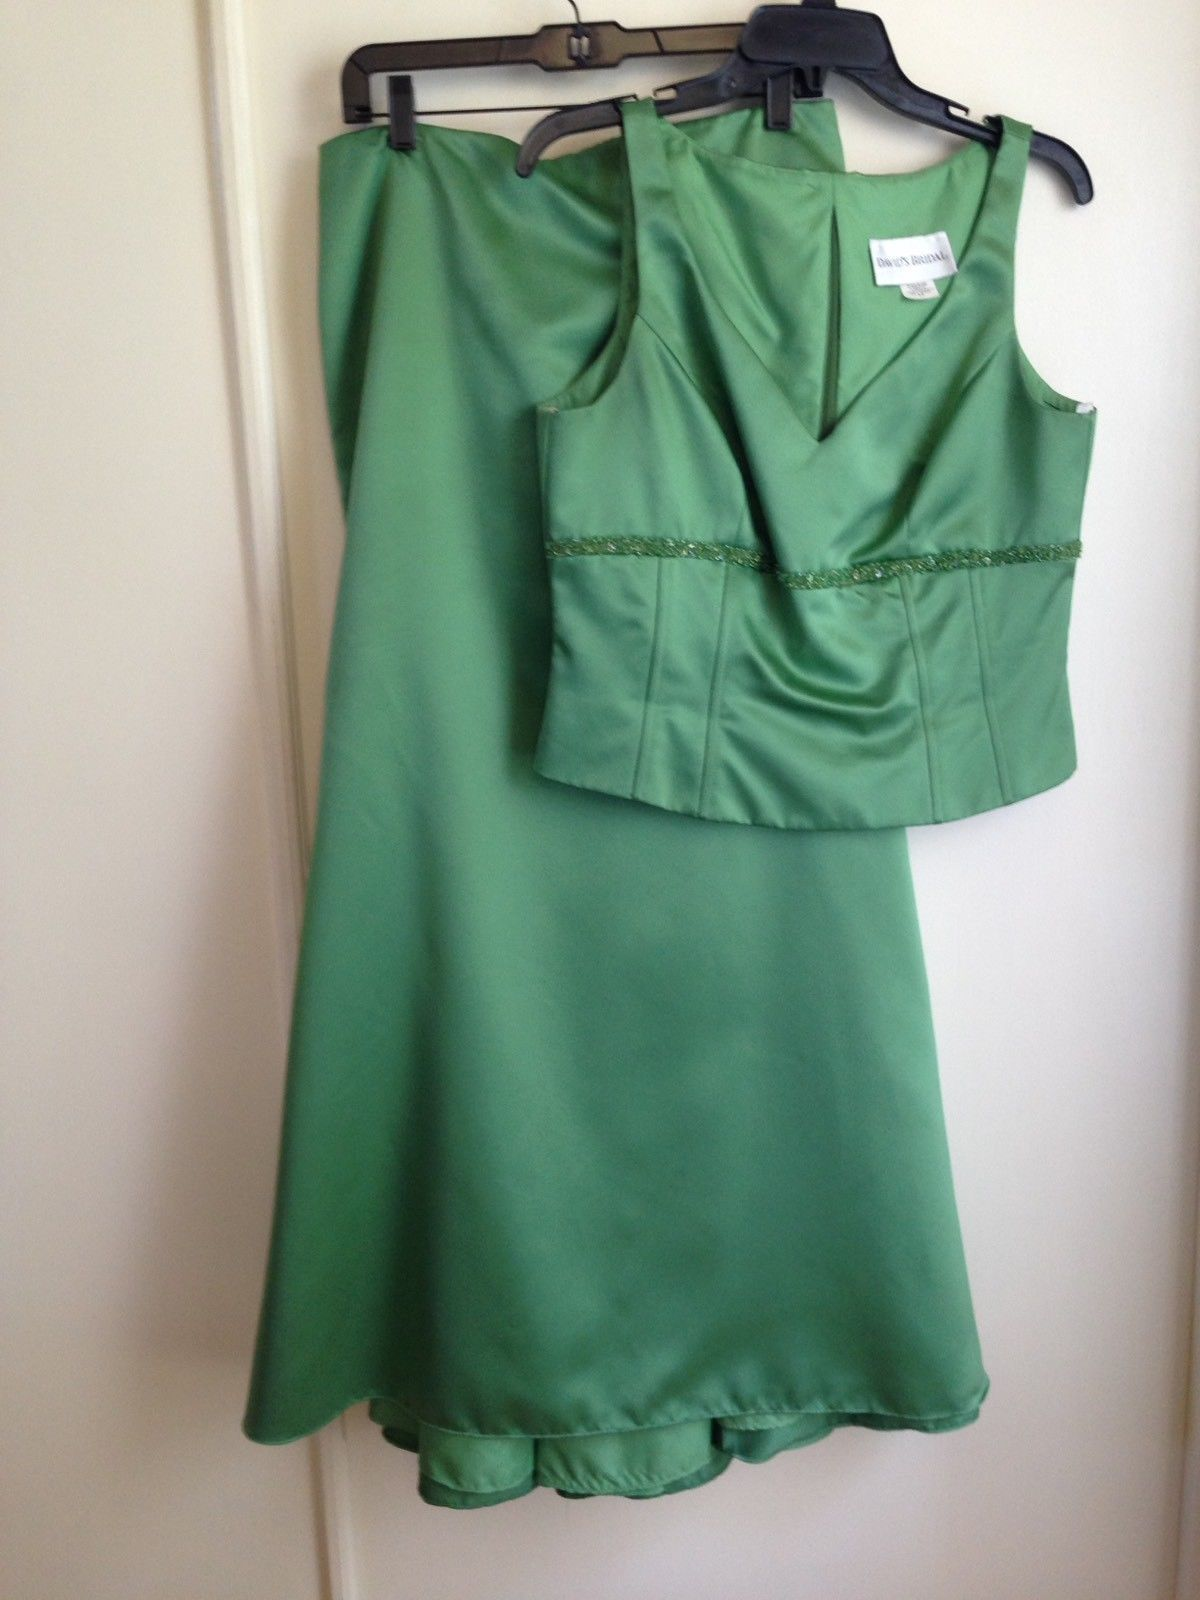 Primary image for David's Bridal Green Two Piece Formal Sleeveless Dress with Decorated Bodice 12